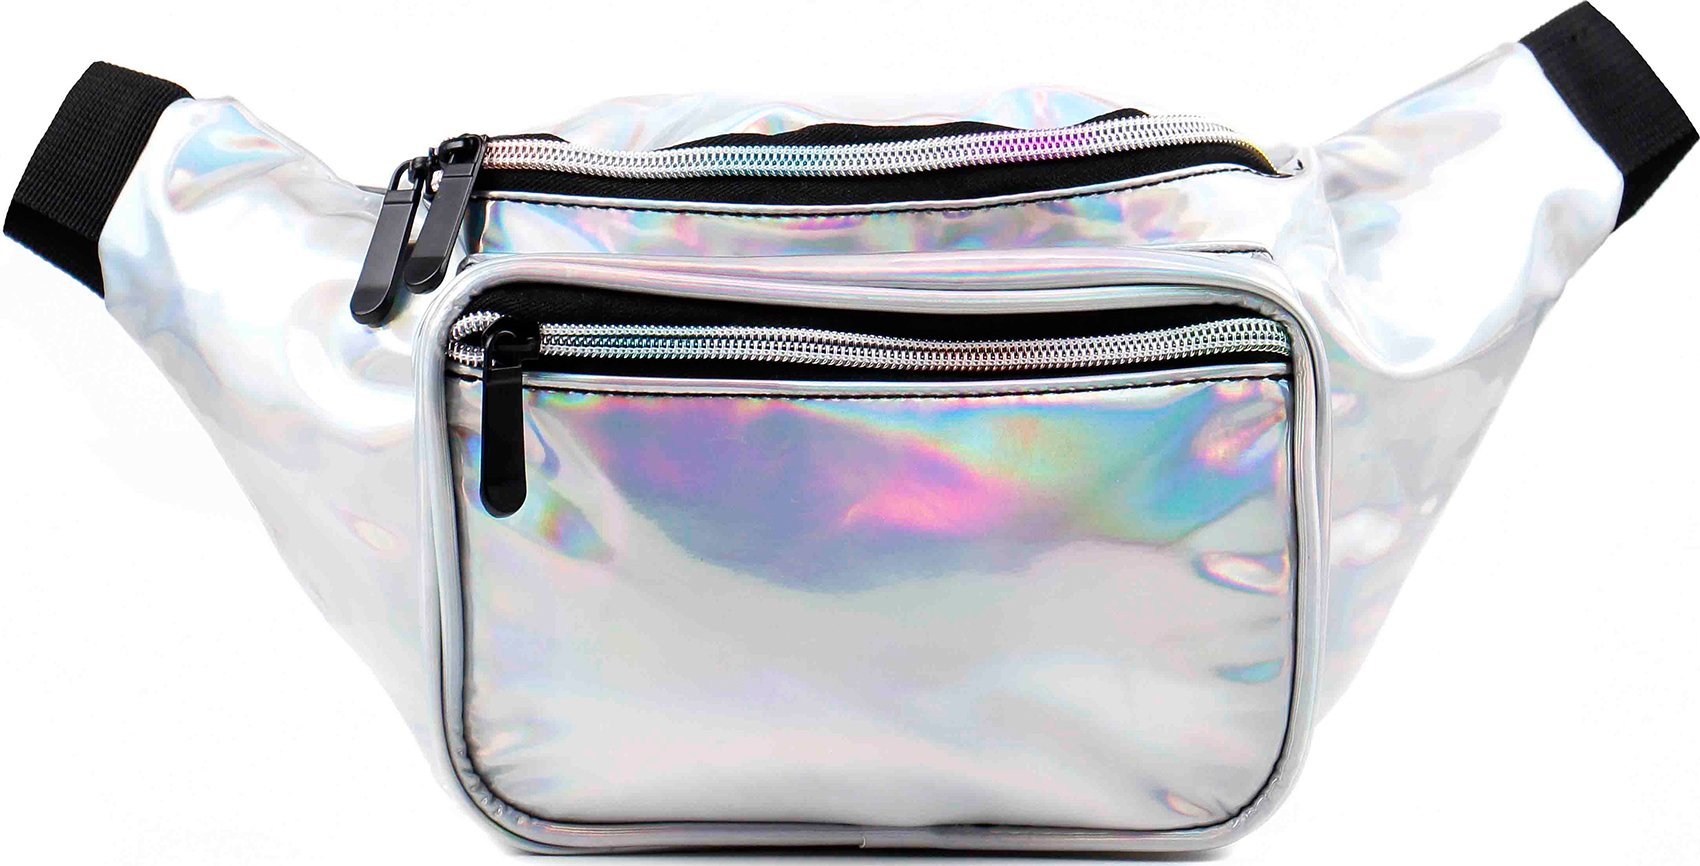 SoJourner Bags Fanny Pack - Silver Holographic